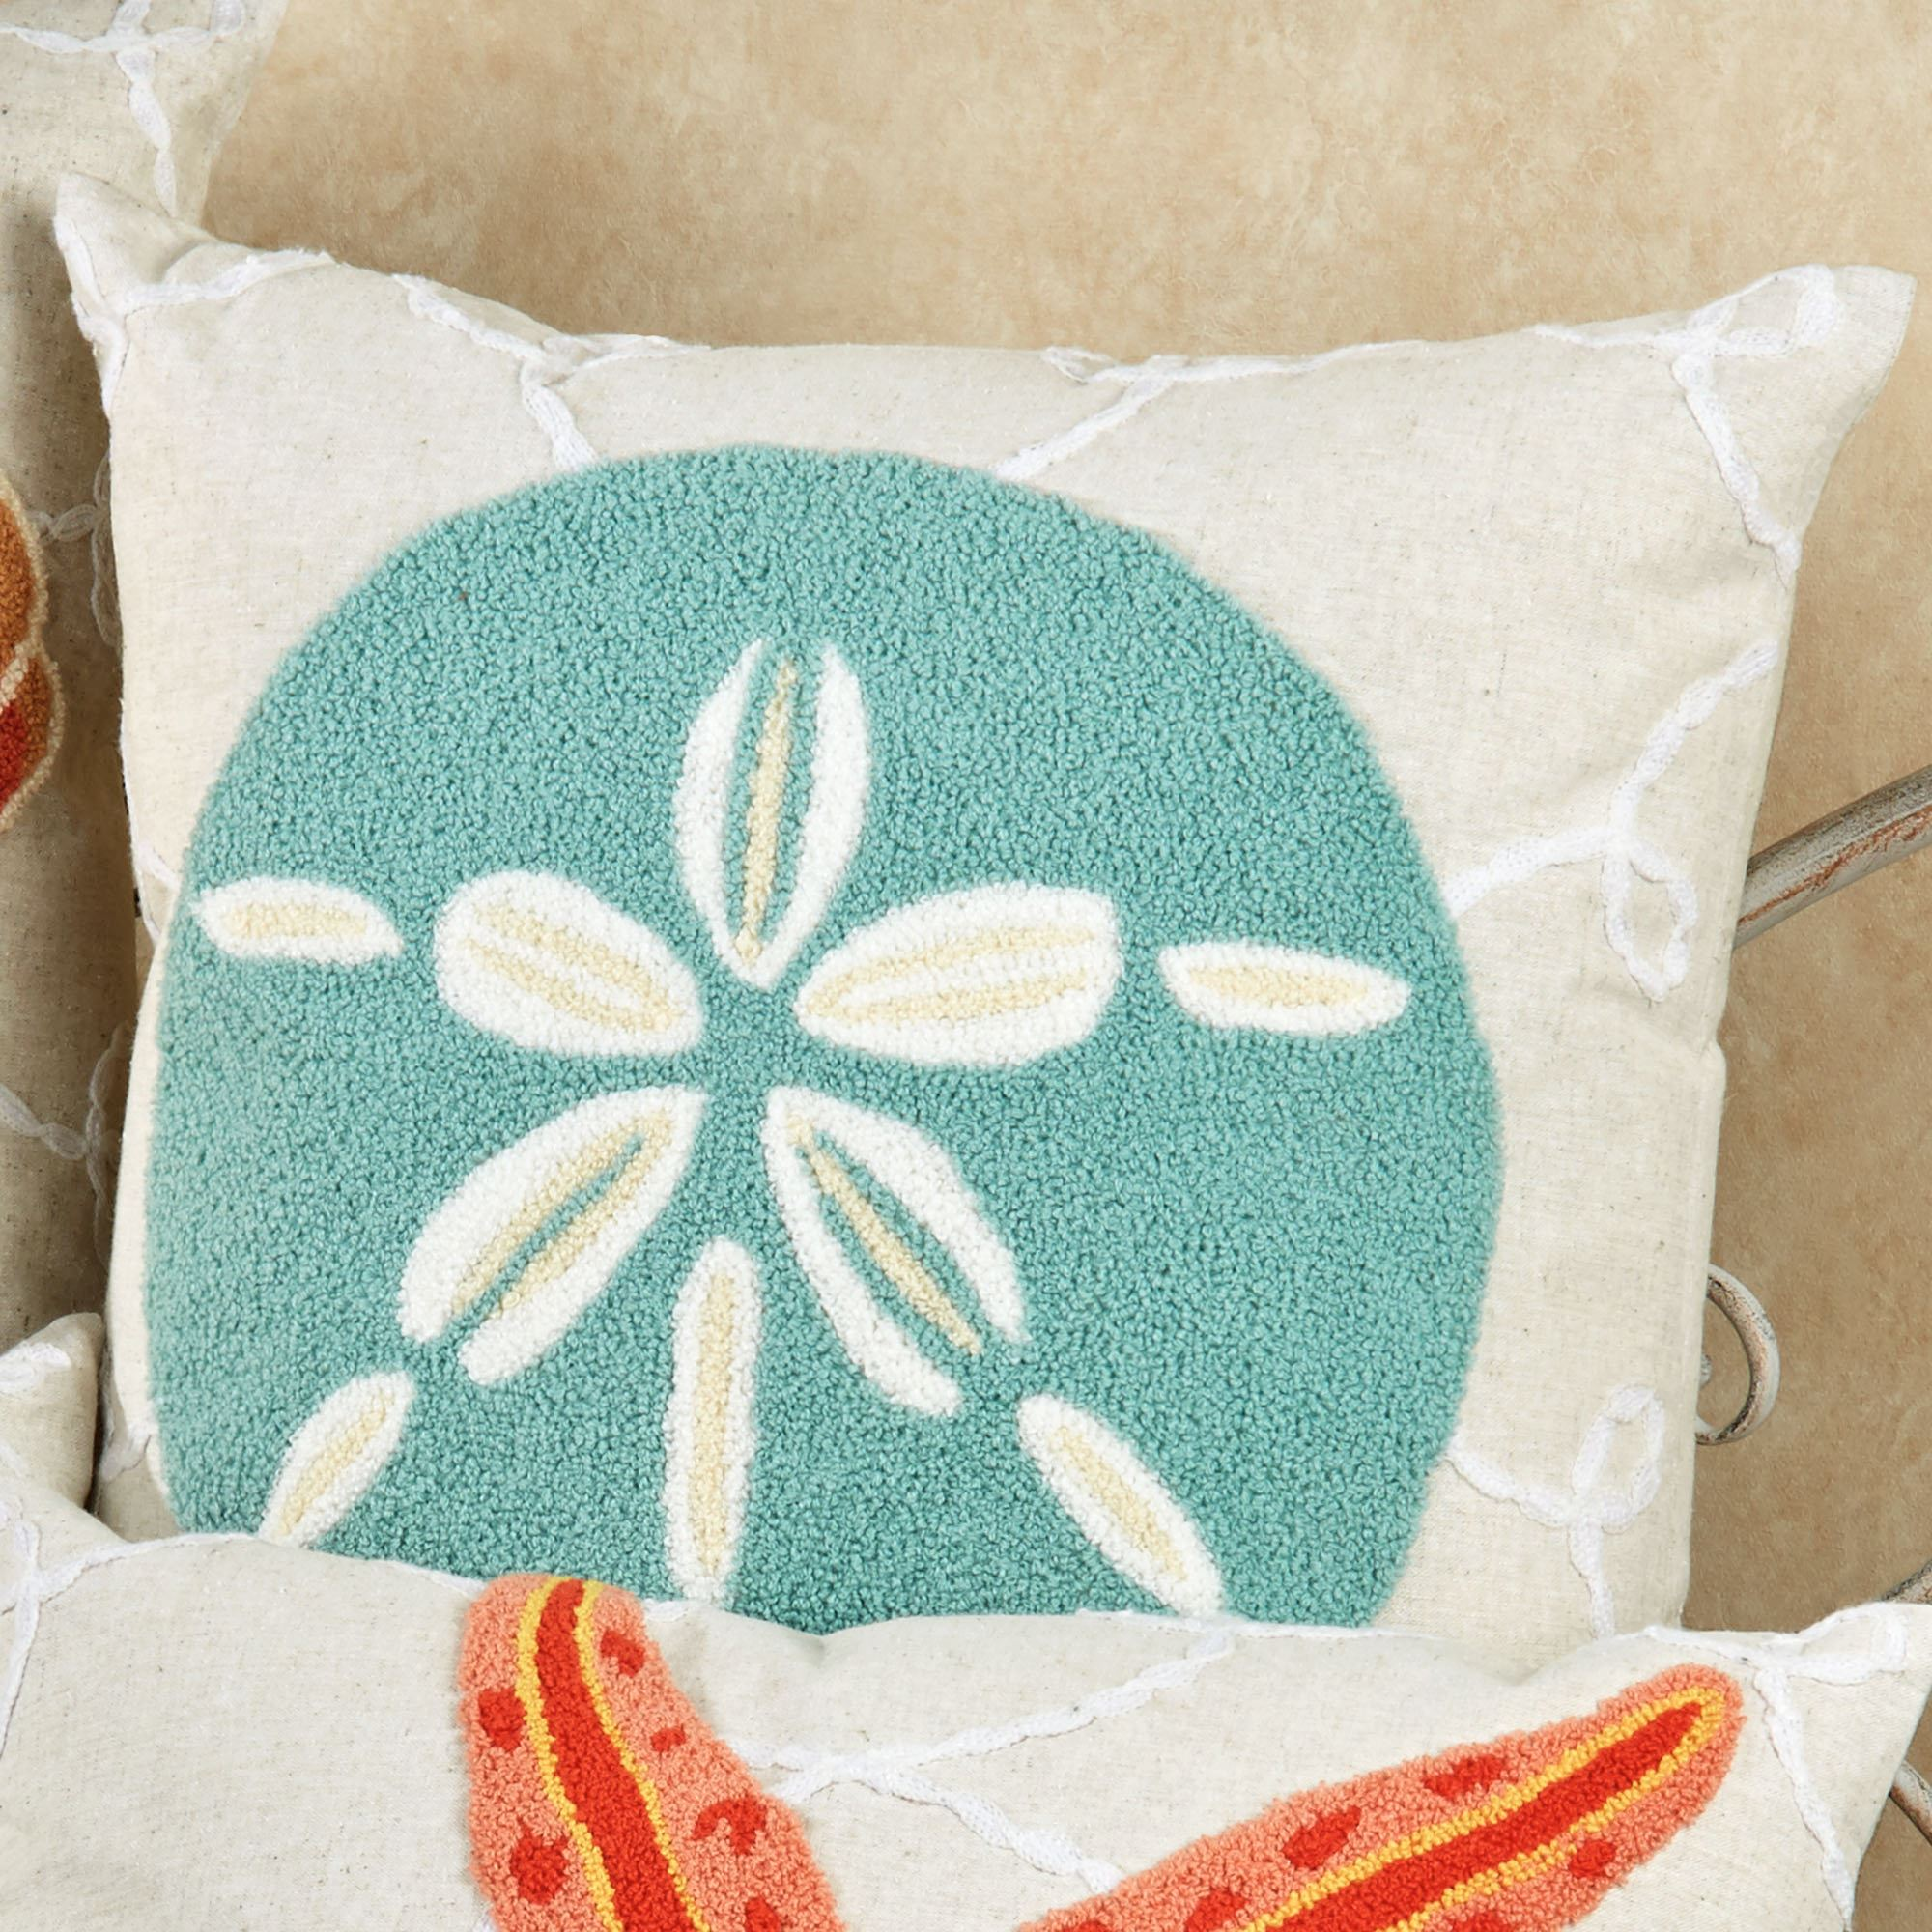 theme house diy make beach ideas best to cover pillows design pillow